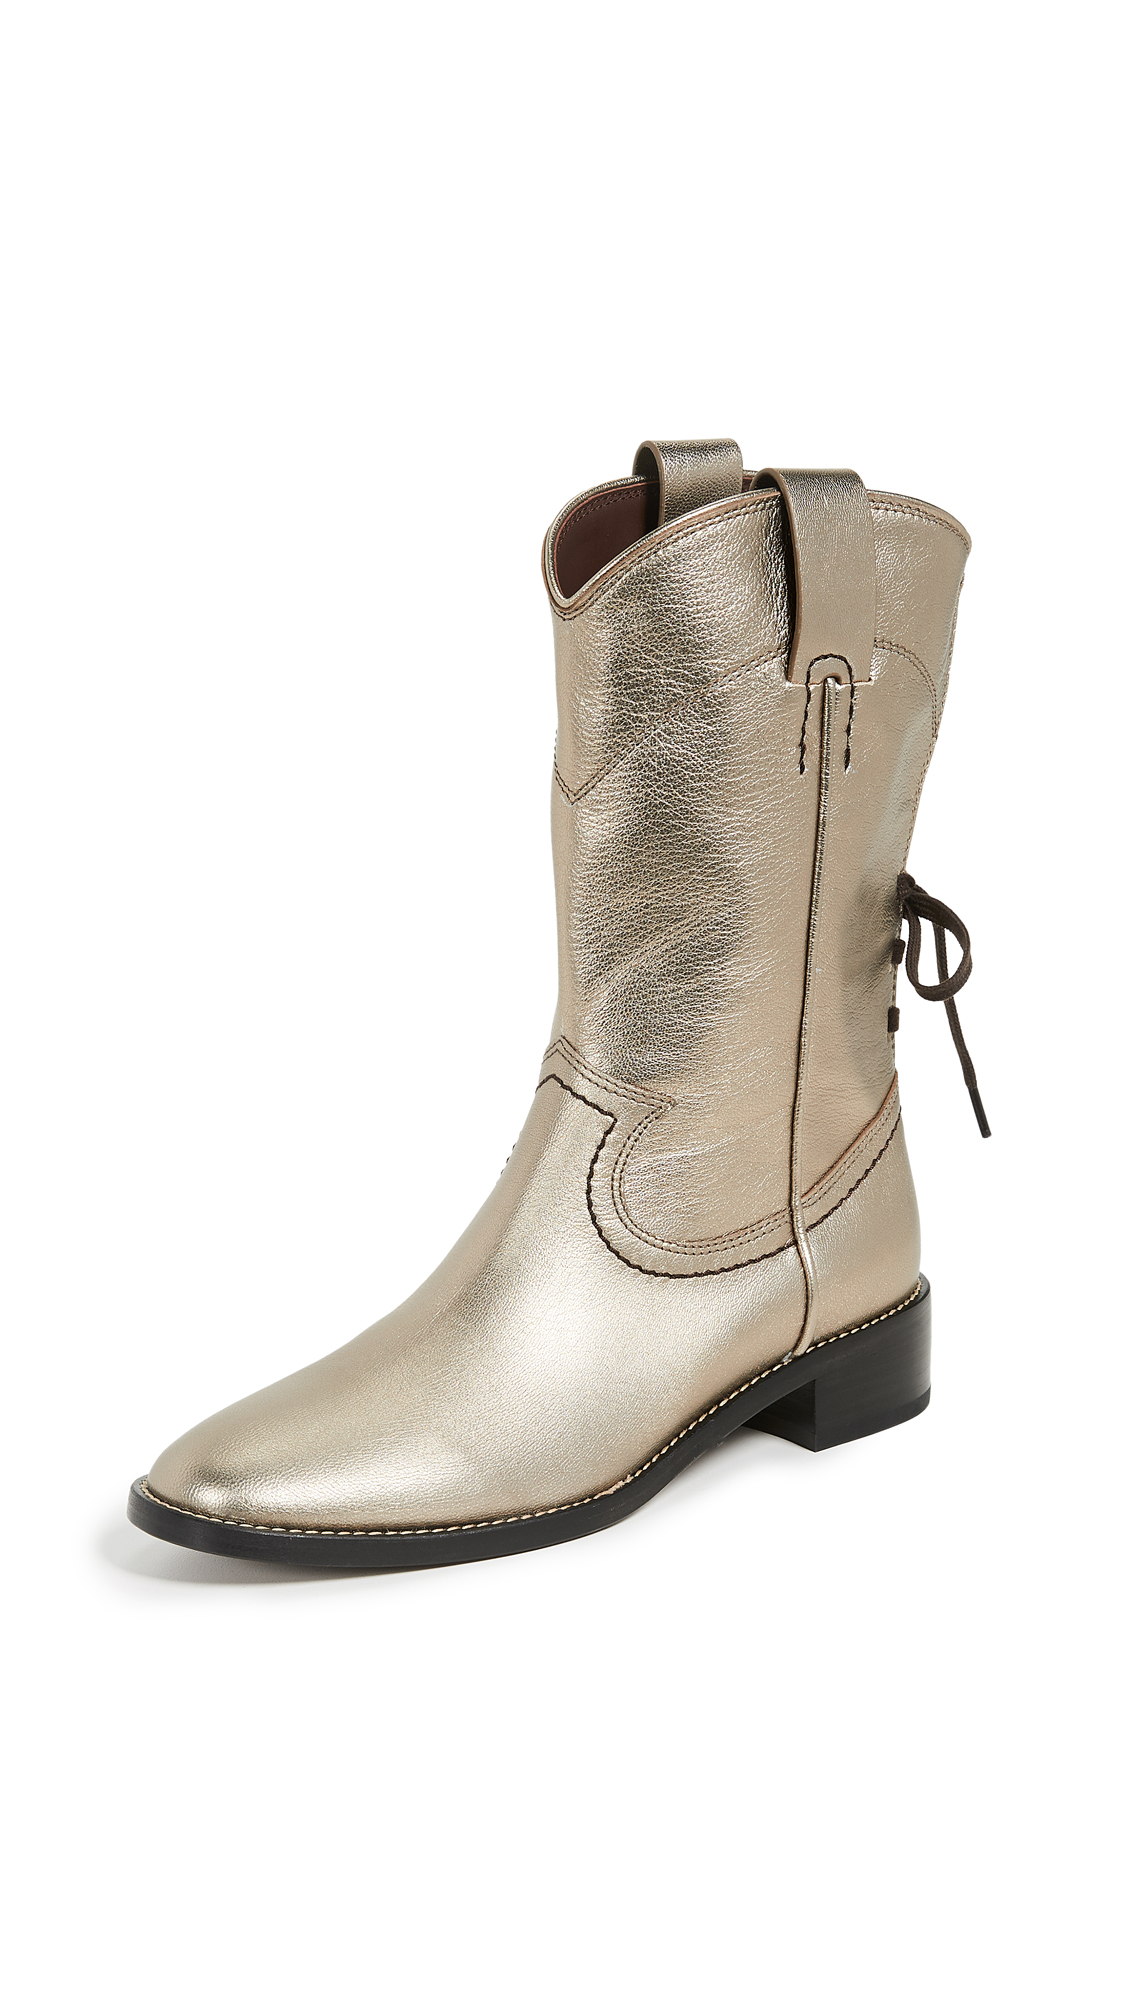 See by Chloe Annika Low Western Boots - Acciaio